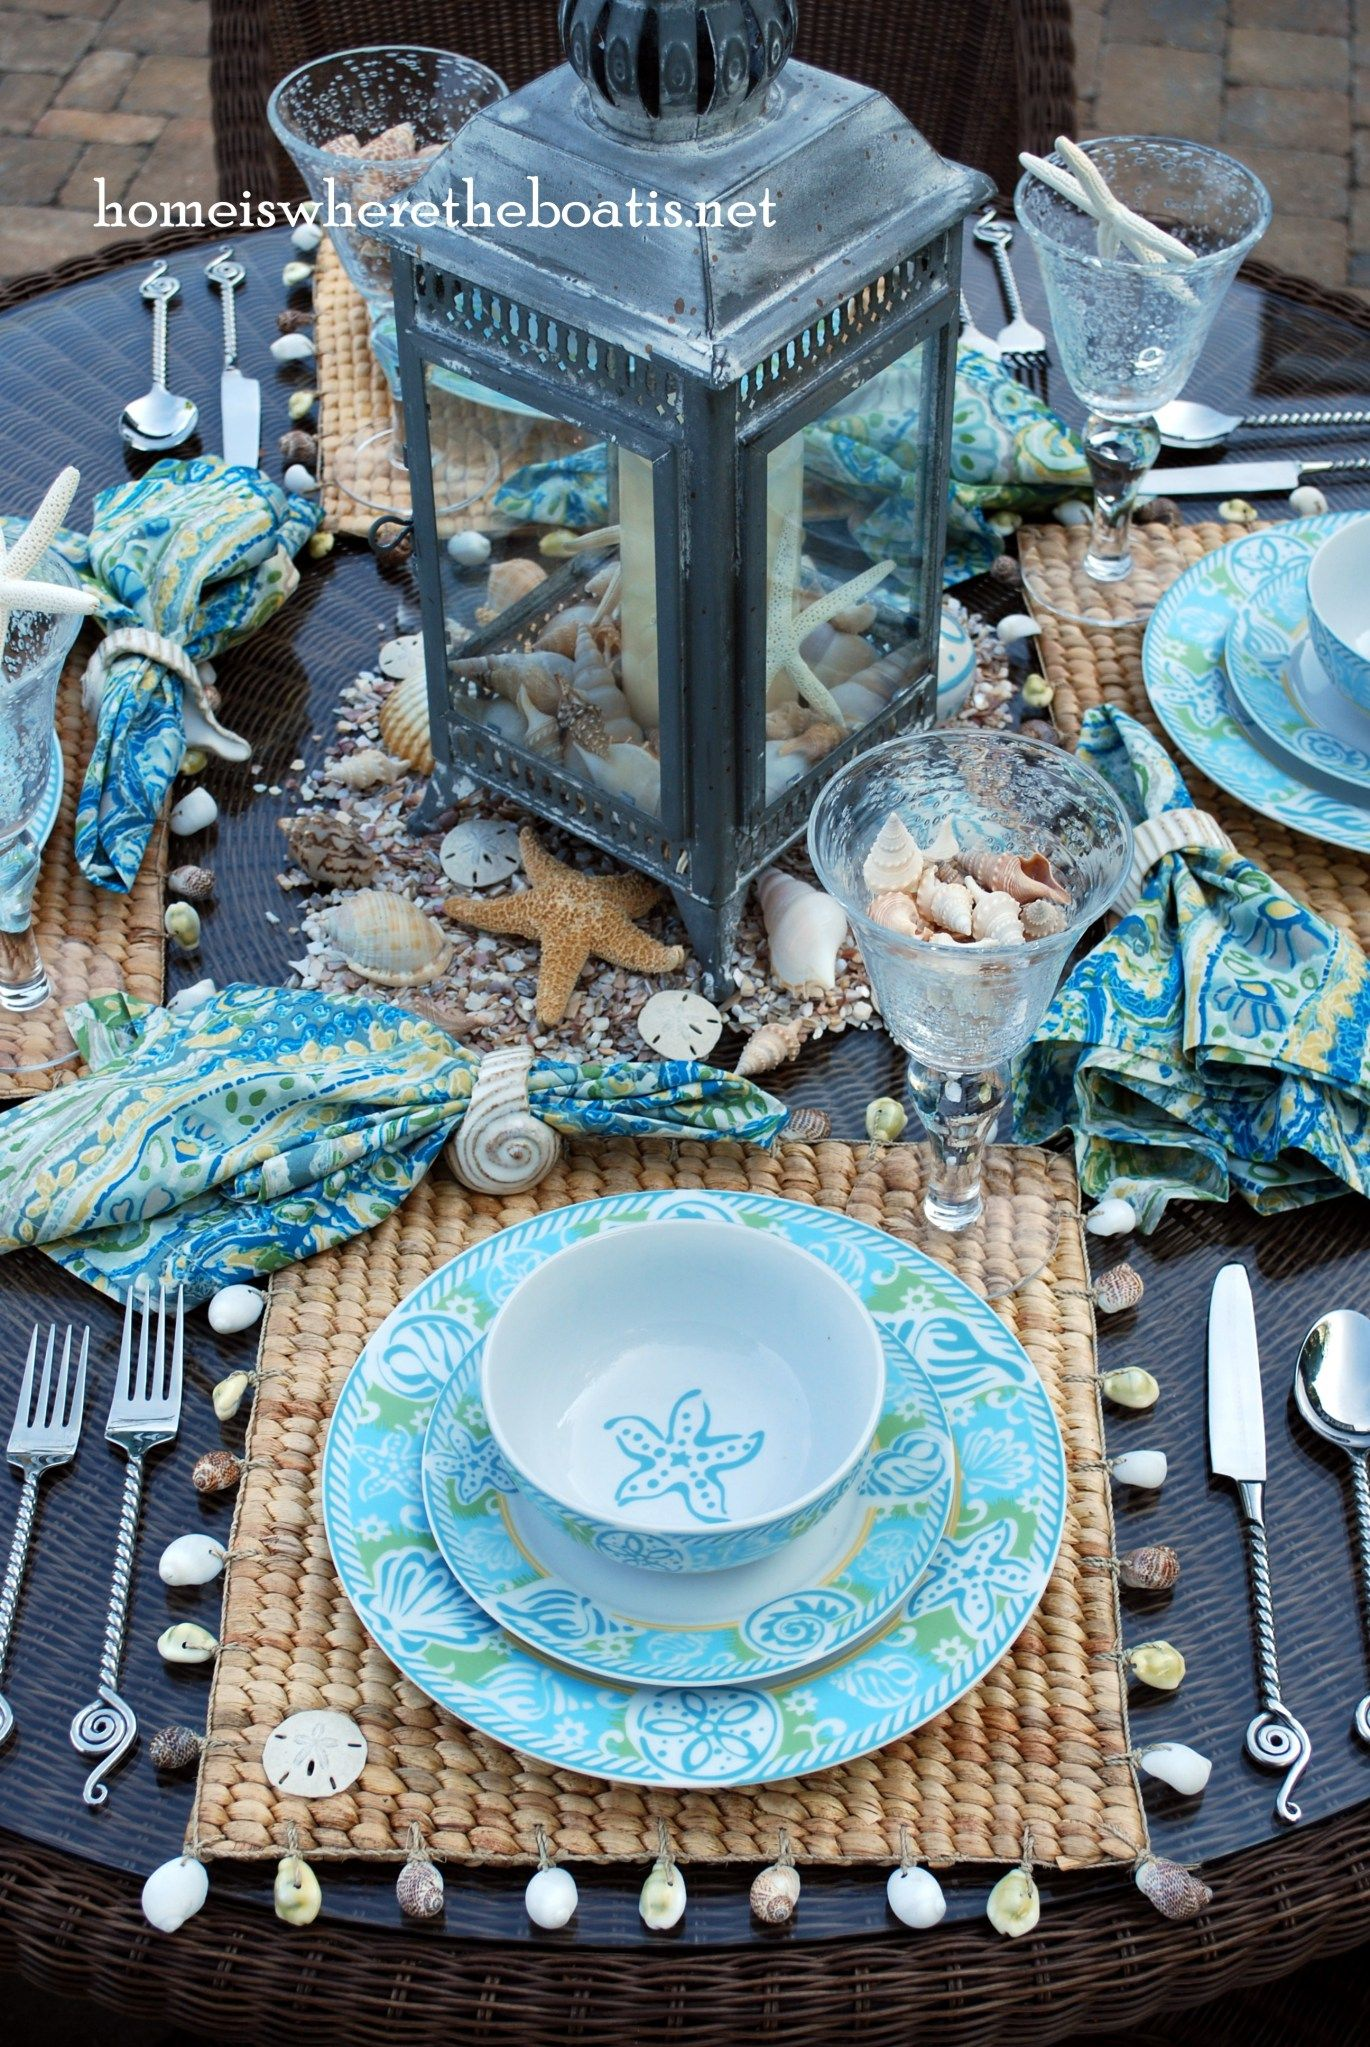 Sea themed tablescape from the Home Is Where The Boat Is site